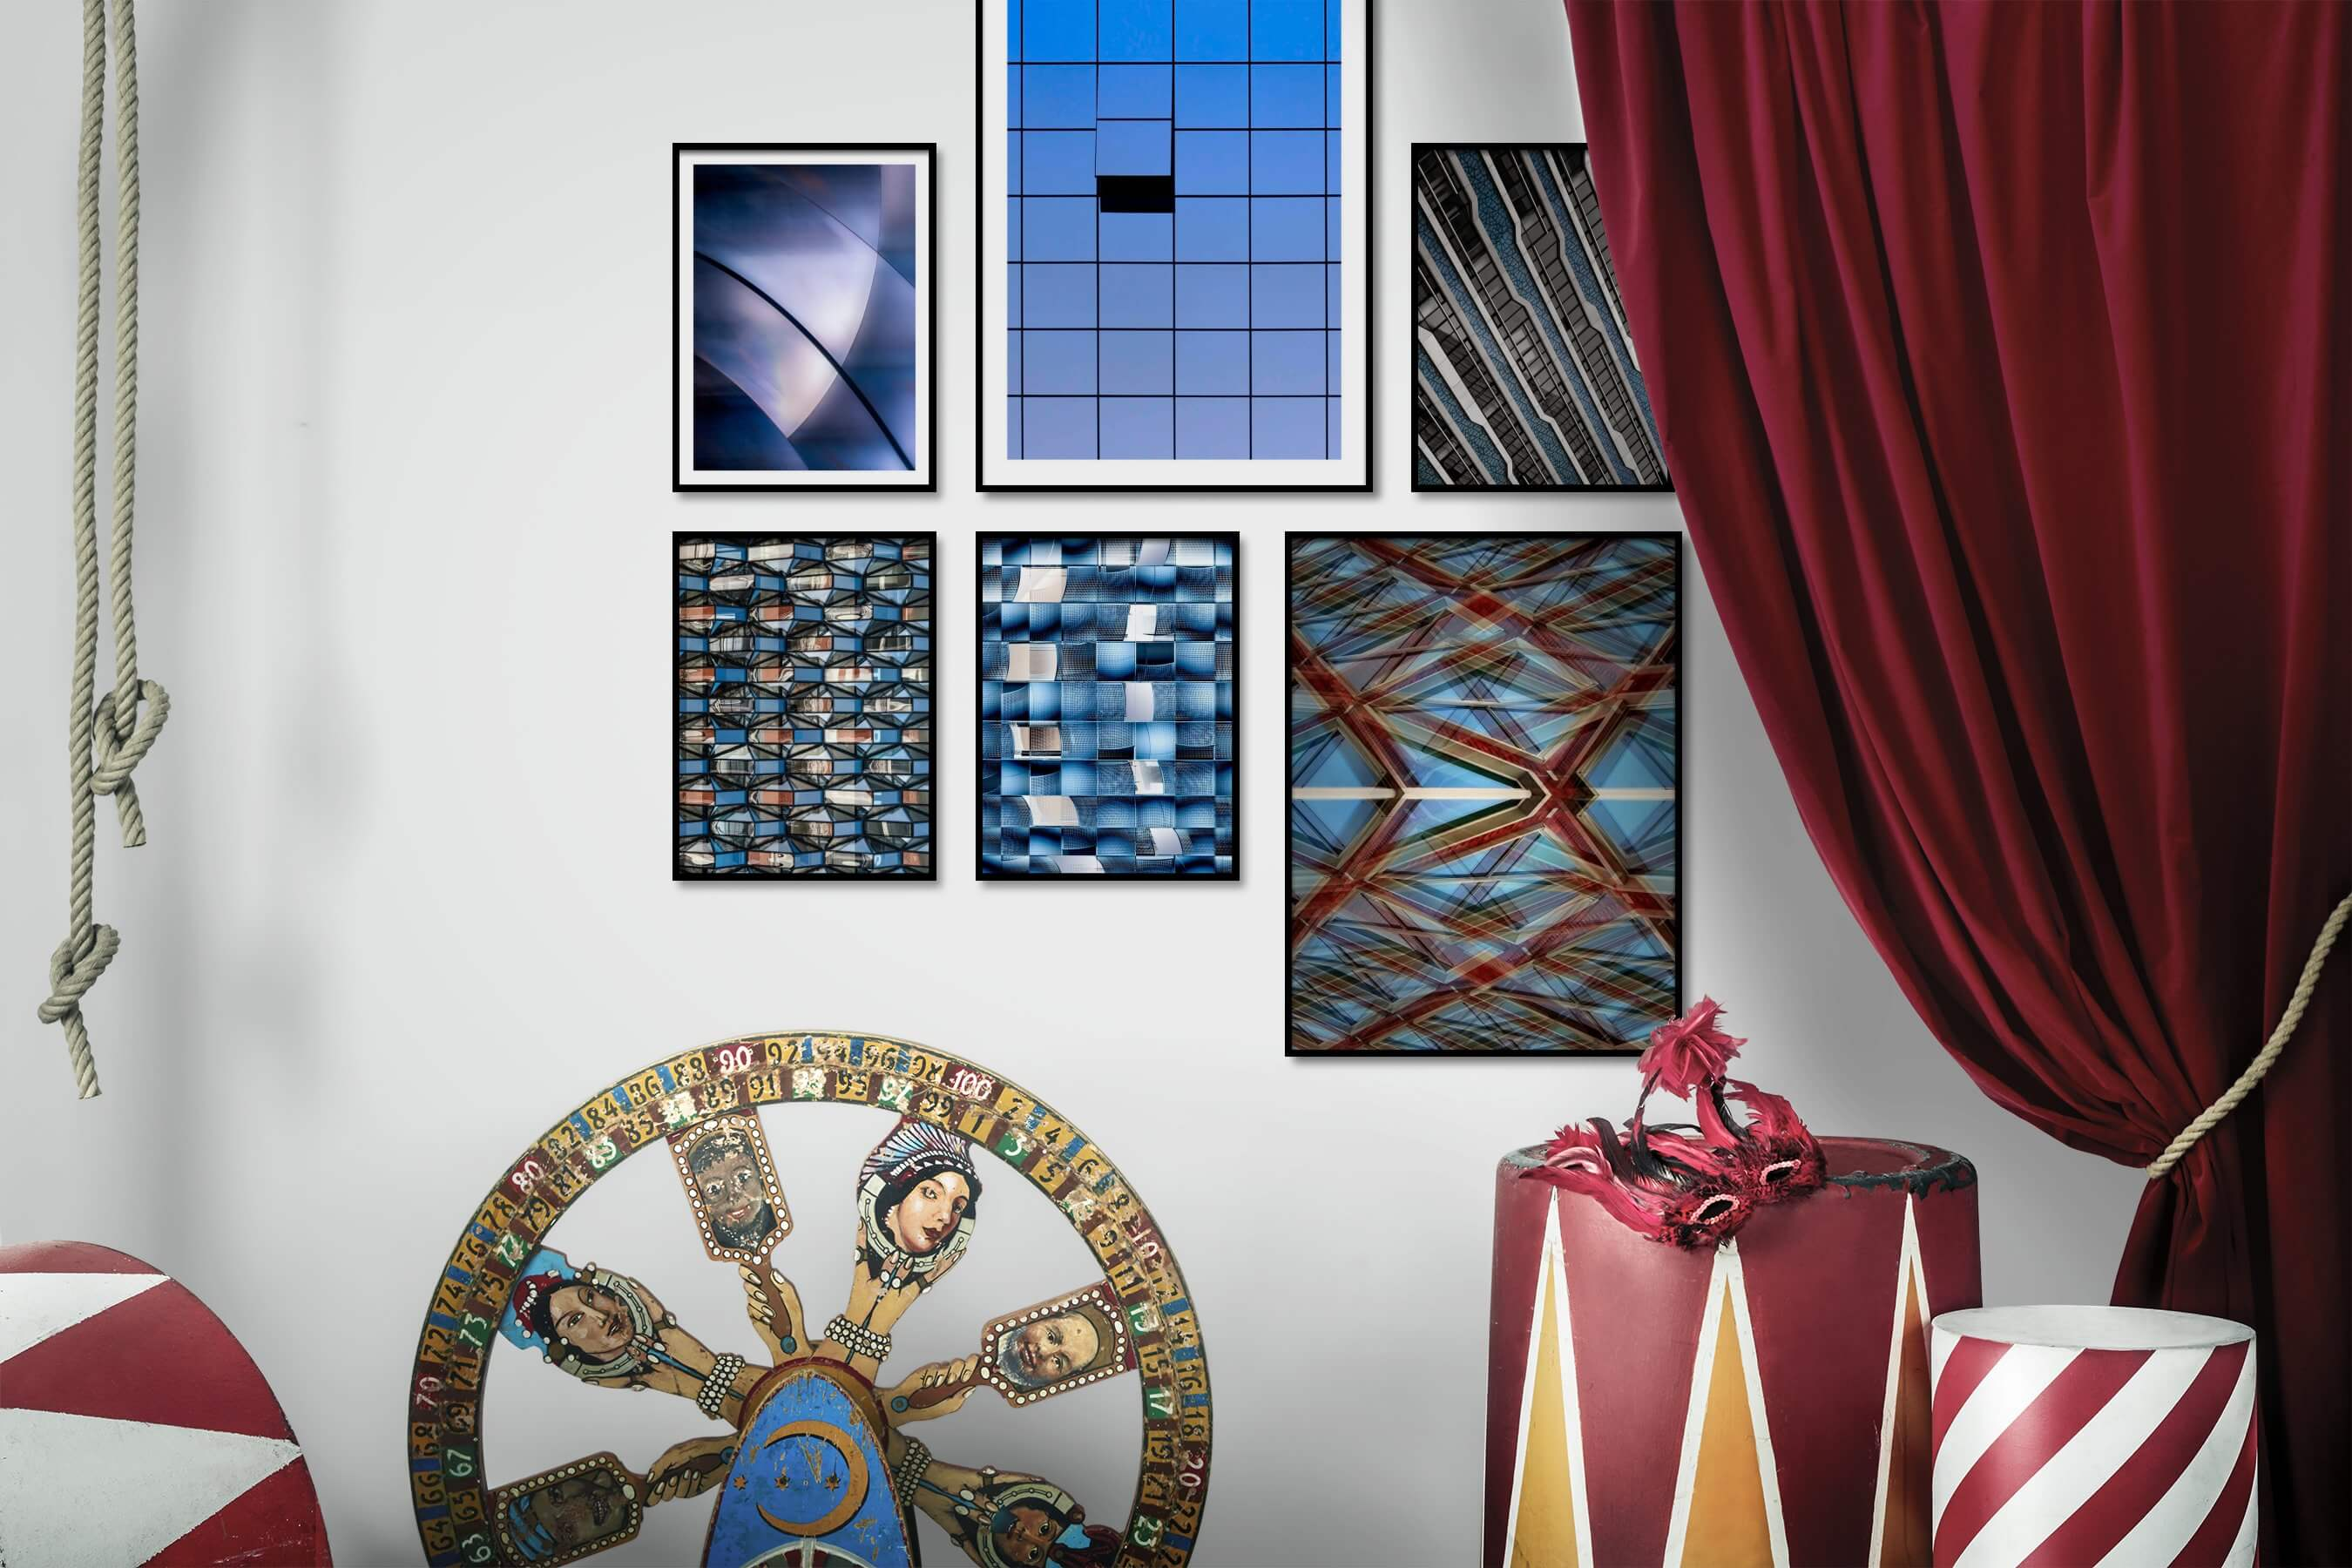 Gallery wall idea with six framed pictures arranged on a wall depicting For the Moderate and For the Maximalist